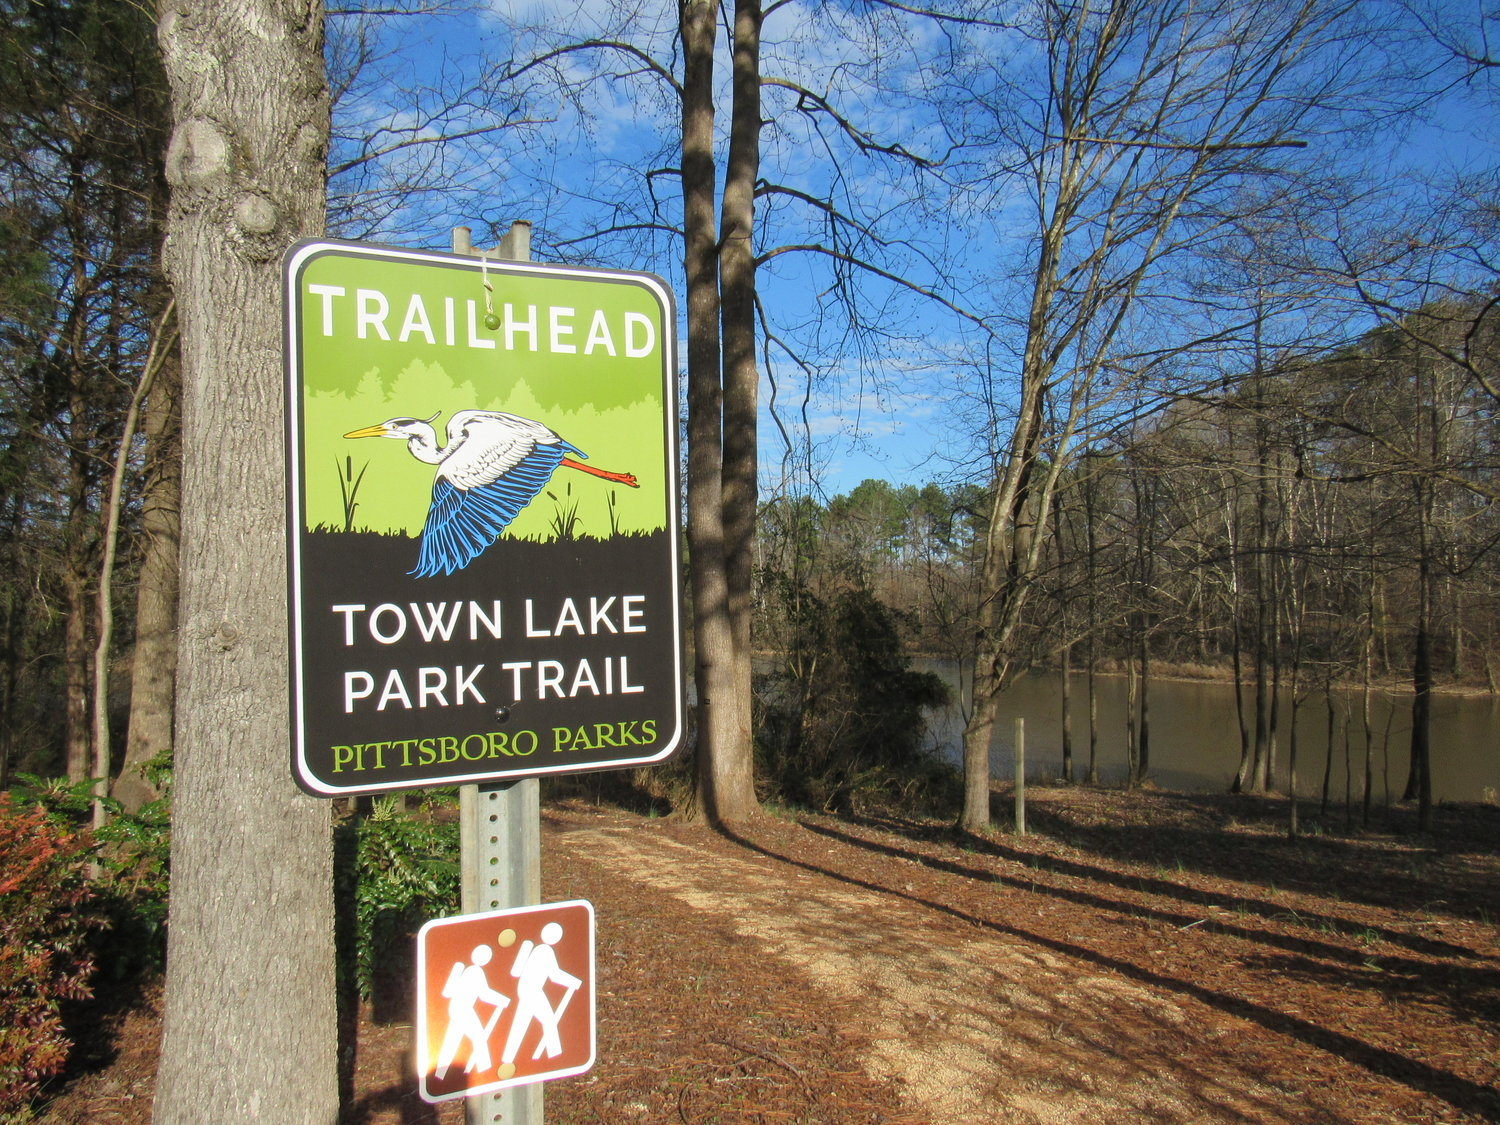 The trail at Town Lake Park in Pittsboro is just one of its several features, which include soccer fields and a lake for fishing.